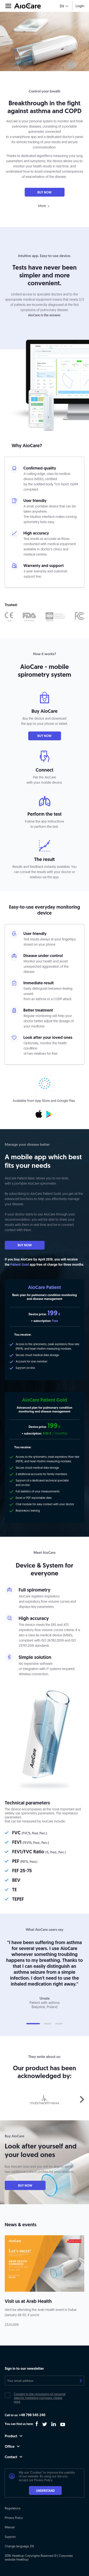 Example of Design for Health, Health Conditions, Respiratory Conditions, Mobile Landing Page by aiocare.com | Mobile Landing Page Design